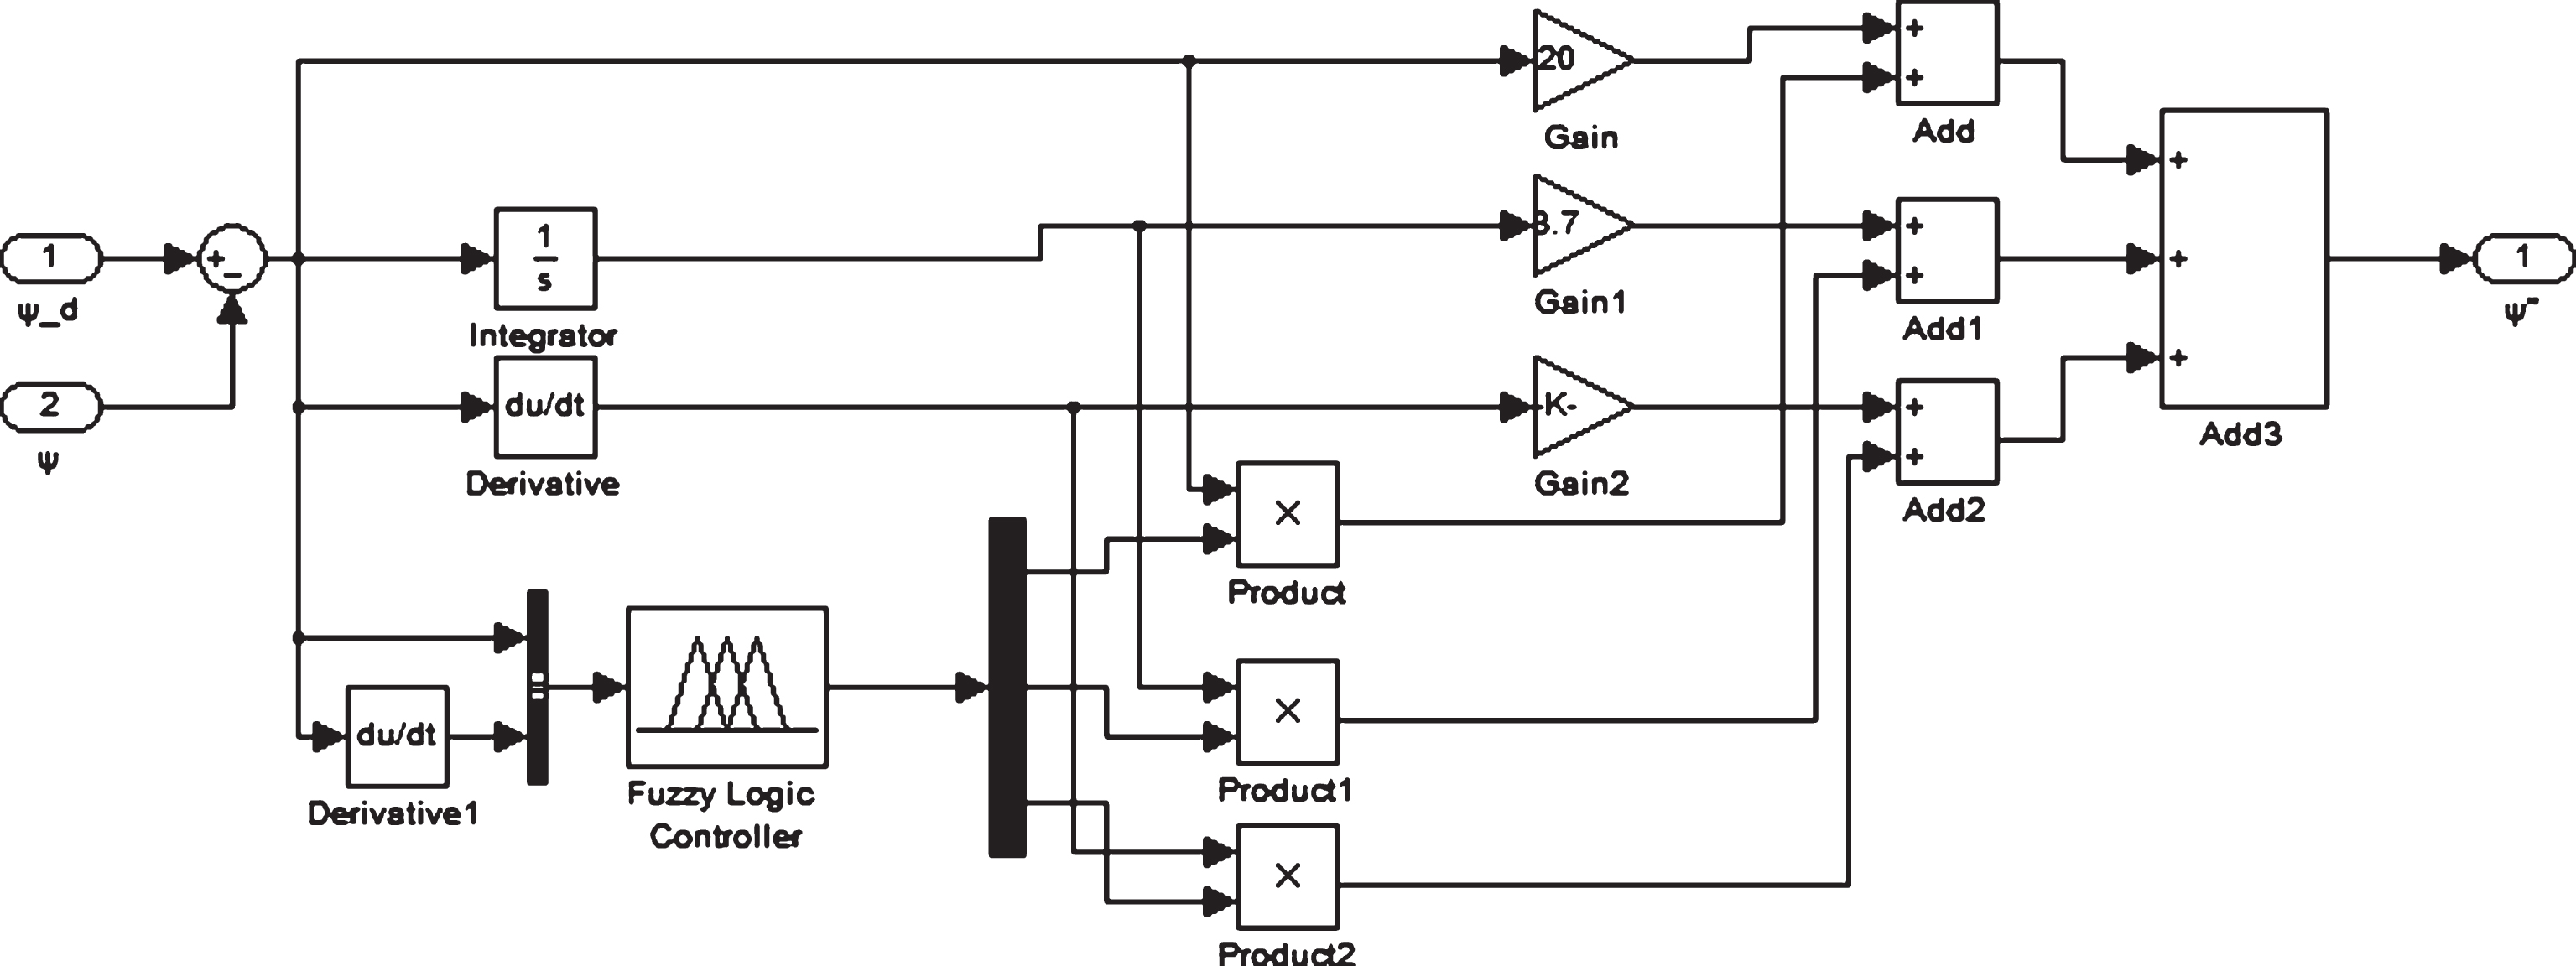 P Id Logic Diagram Electrical Wiring Diagrams Instrumentation A Pid And Fuzzy Based Method For Quadrotor Aircraft Ro System Piping